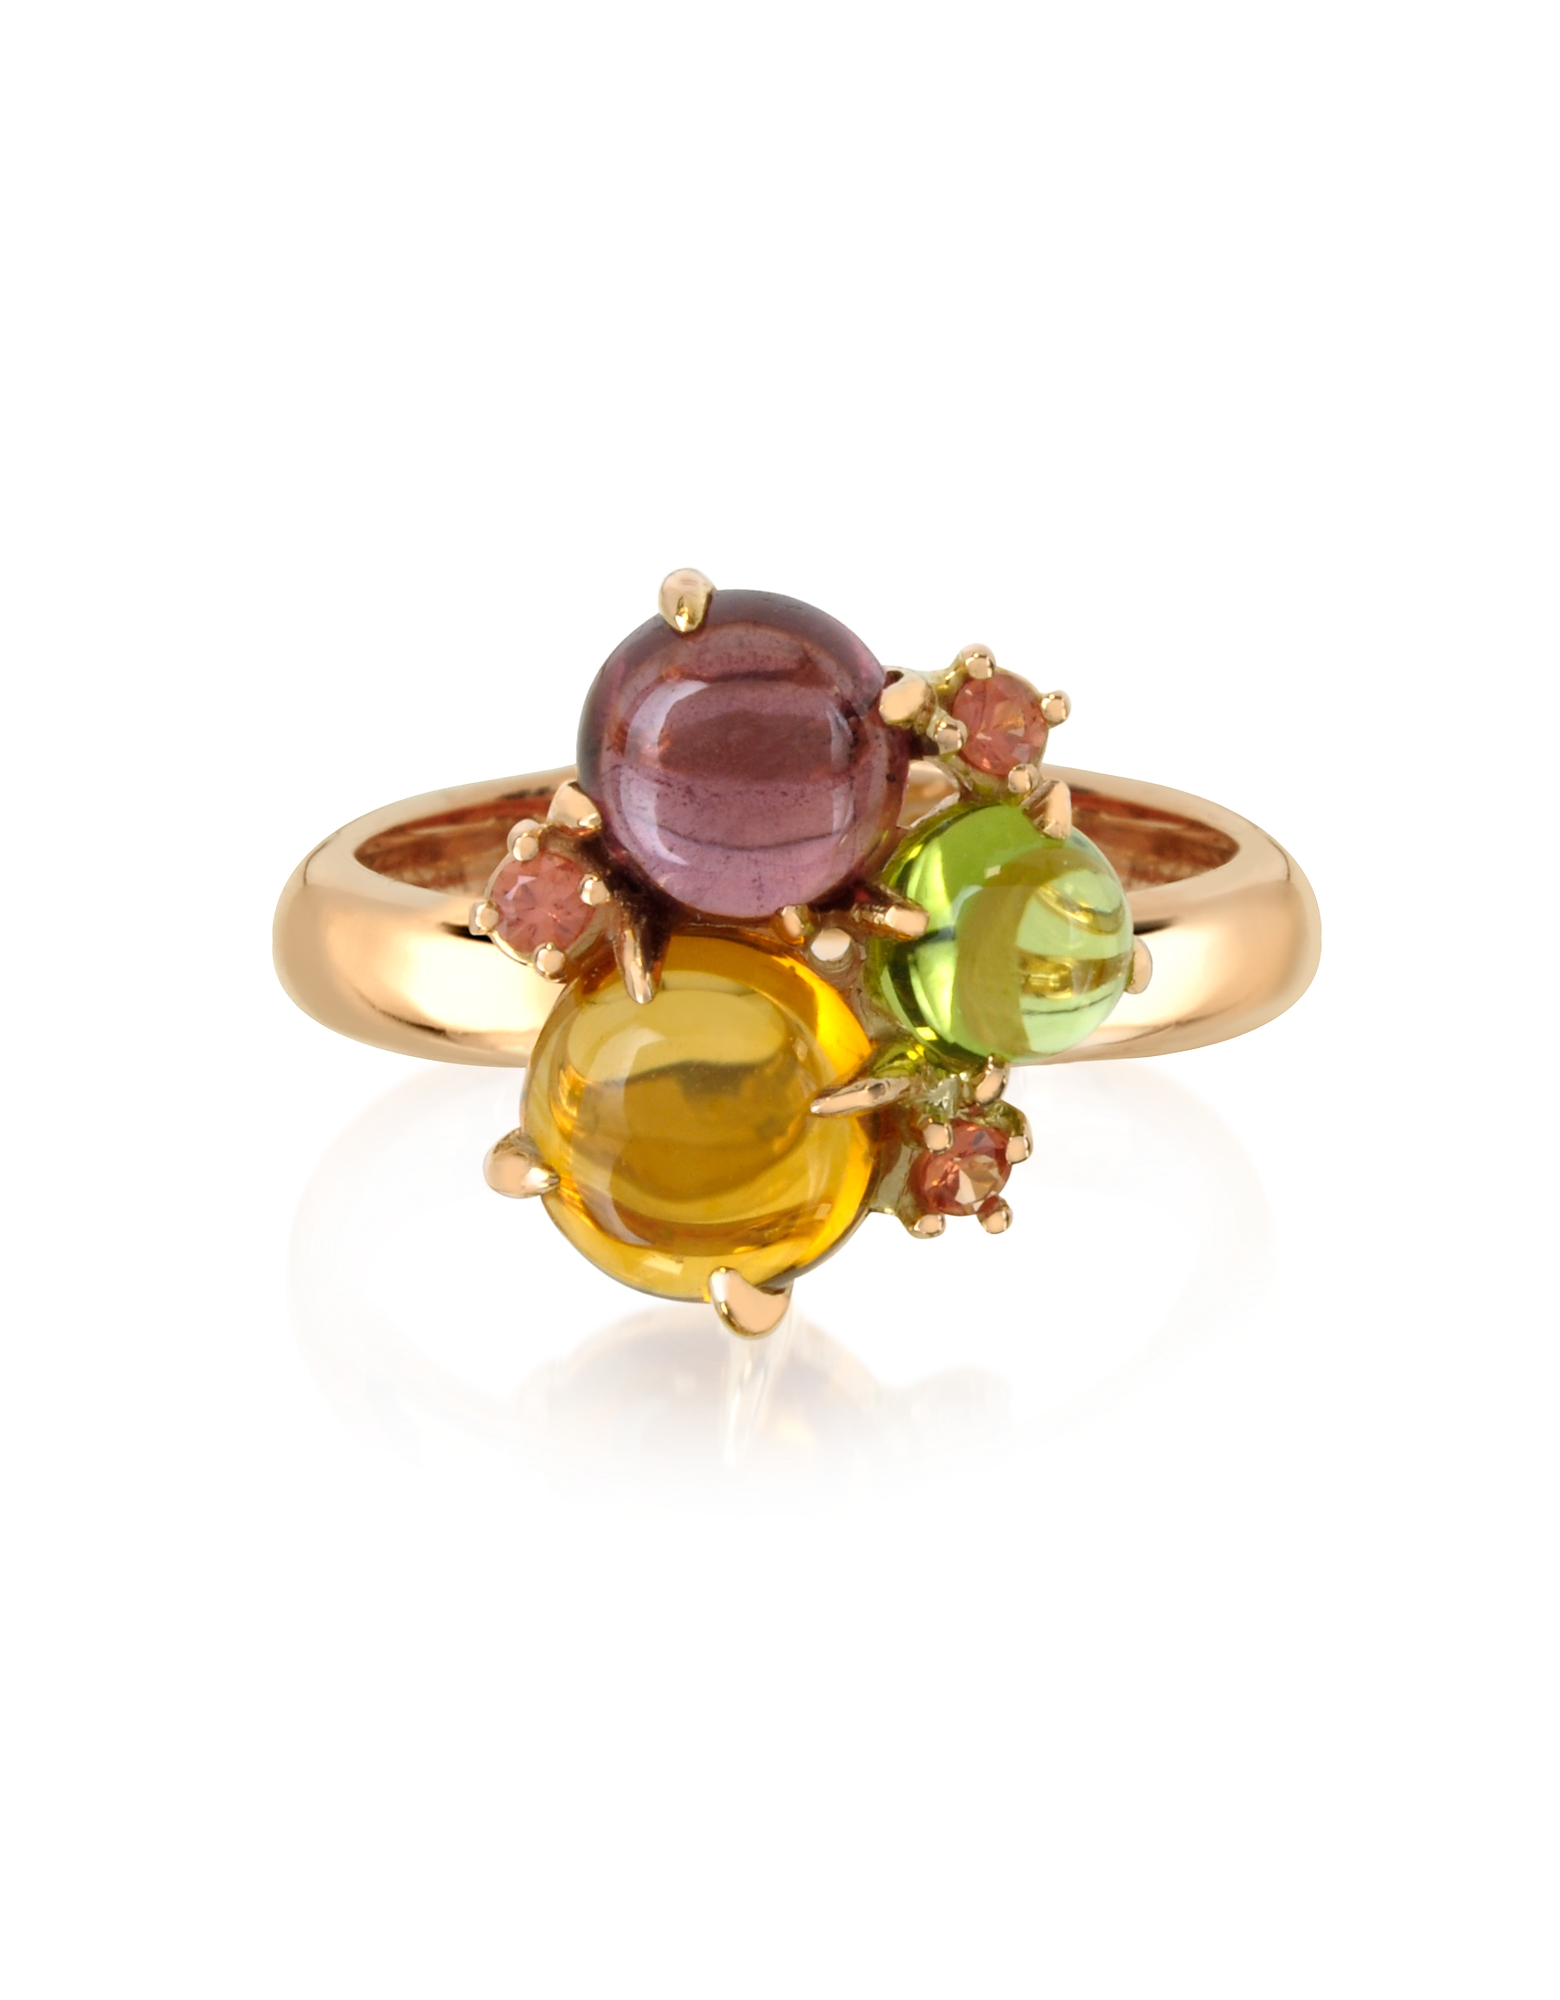 Image of Mia & Beverly Designer Rings, Gemstones 18K Rose Gold Ring